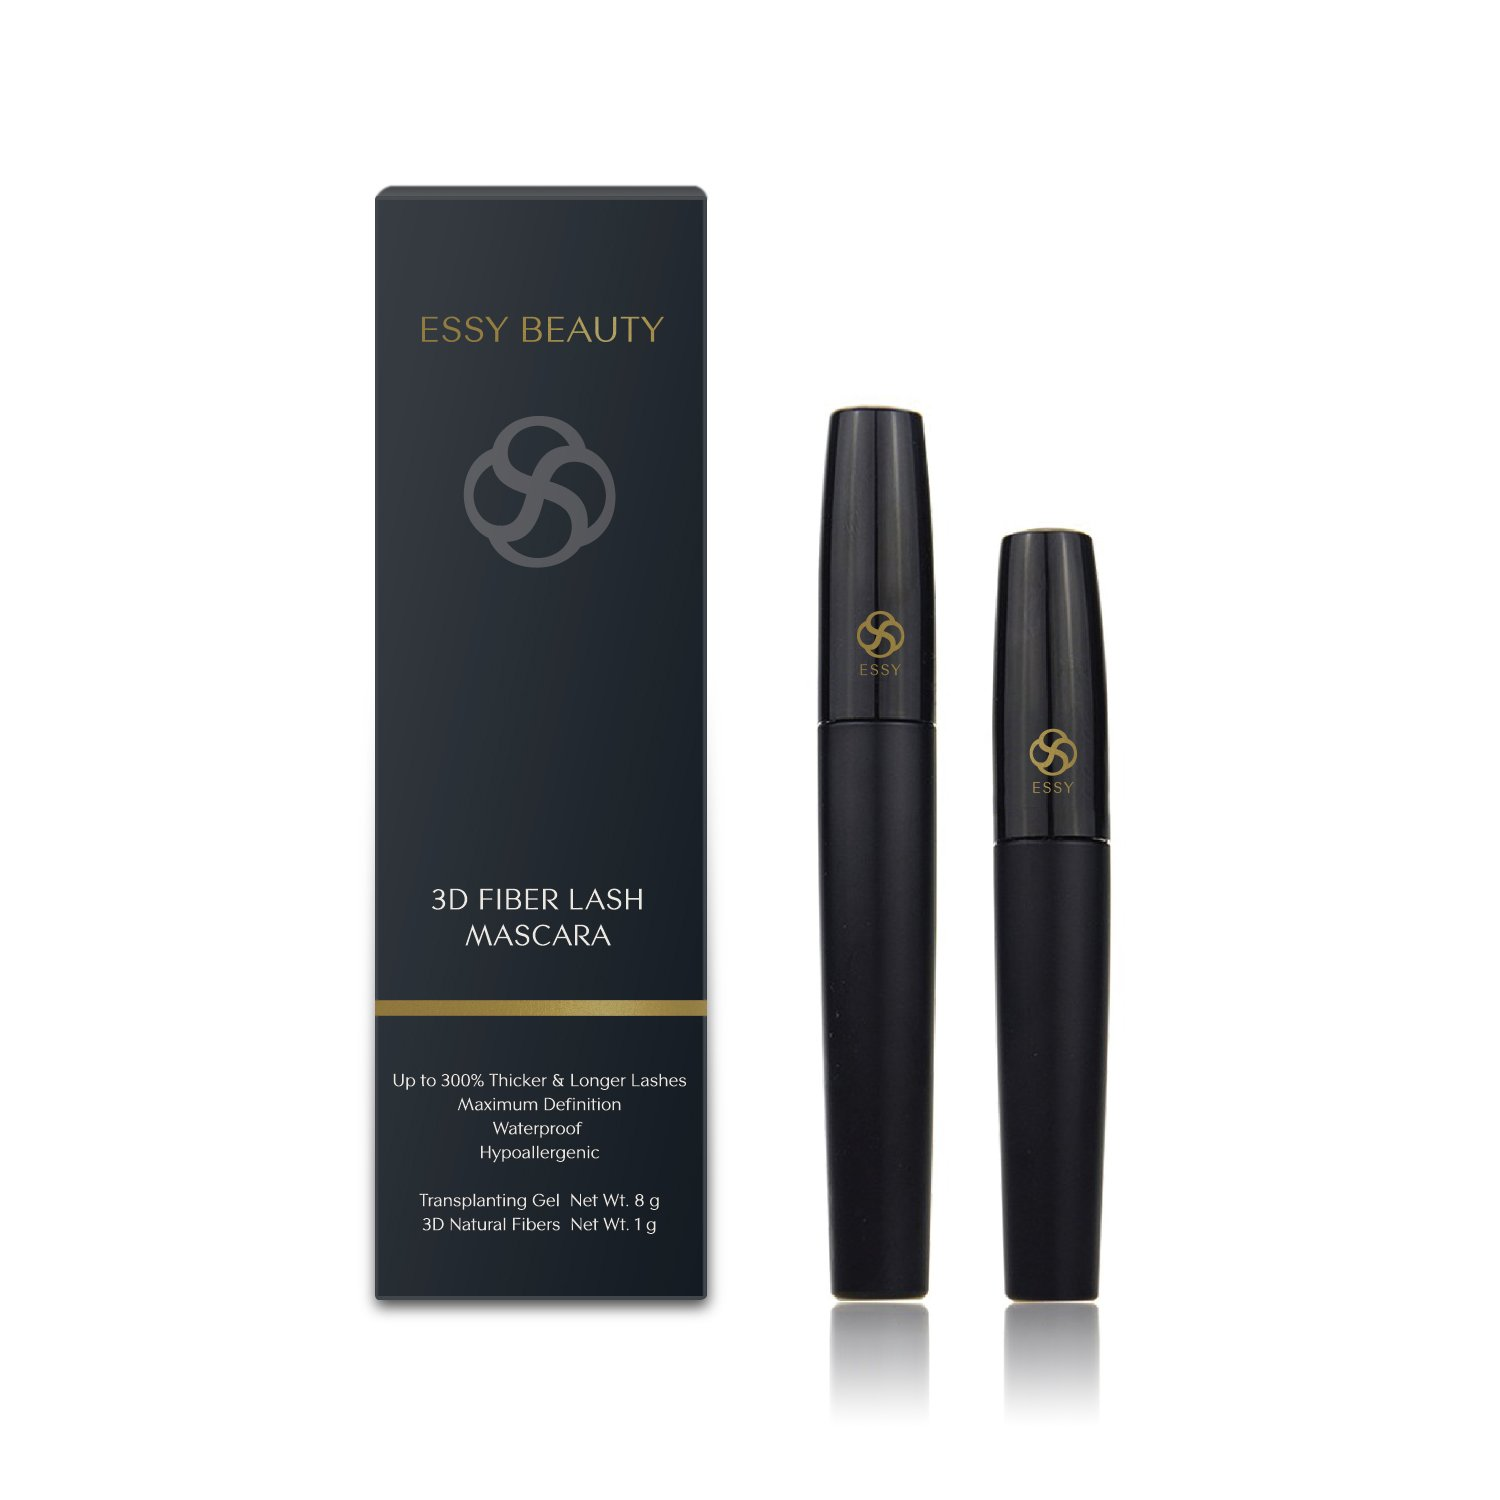 4ac433389f0 Amazon.com : 3D Fiber Lashes Mascara, Waterproof & Long Lasting, 3 Steps  Easy to Apply for Thickening & Lengthening Lashes : Beauty